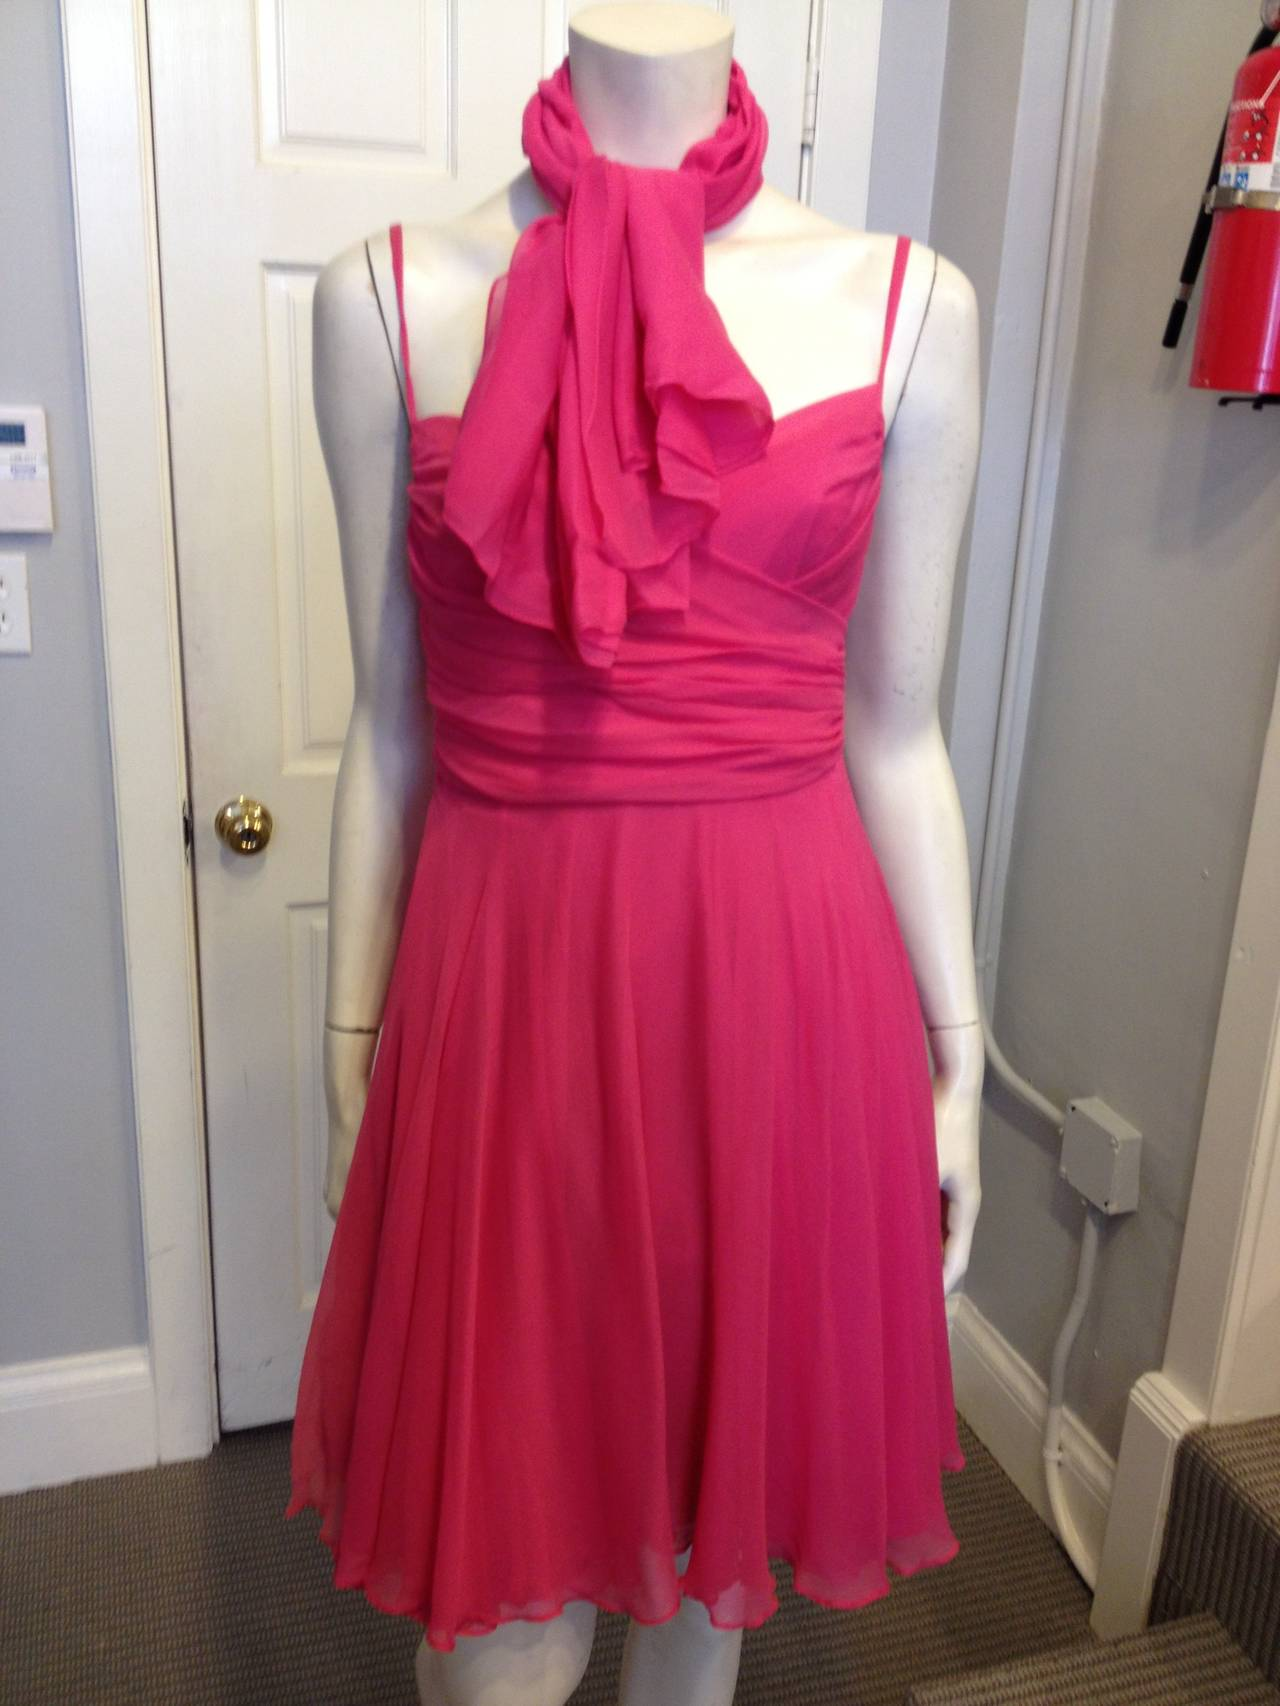 French designer Sophie Sitbon makes such fun dresses! In a saturated candy pink - a color that is bright enough to be girly and sweet, but deep enough and with enough dimension to stay modern - this piece is perfect for a summertime wedding, a